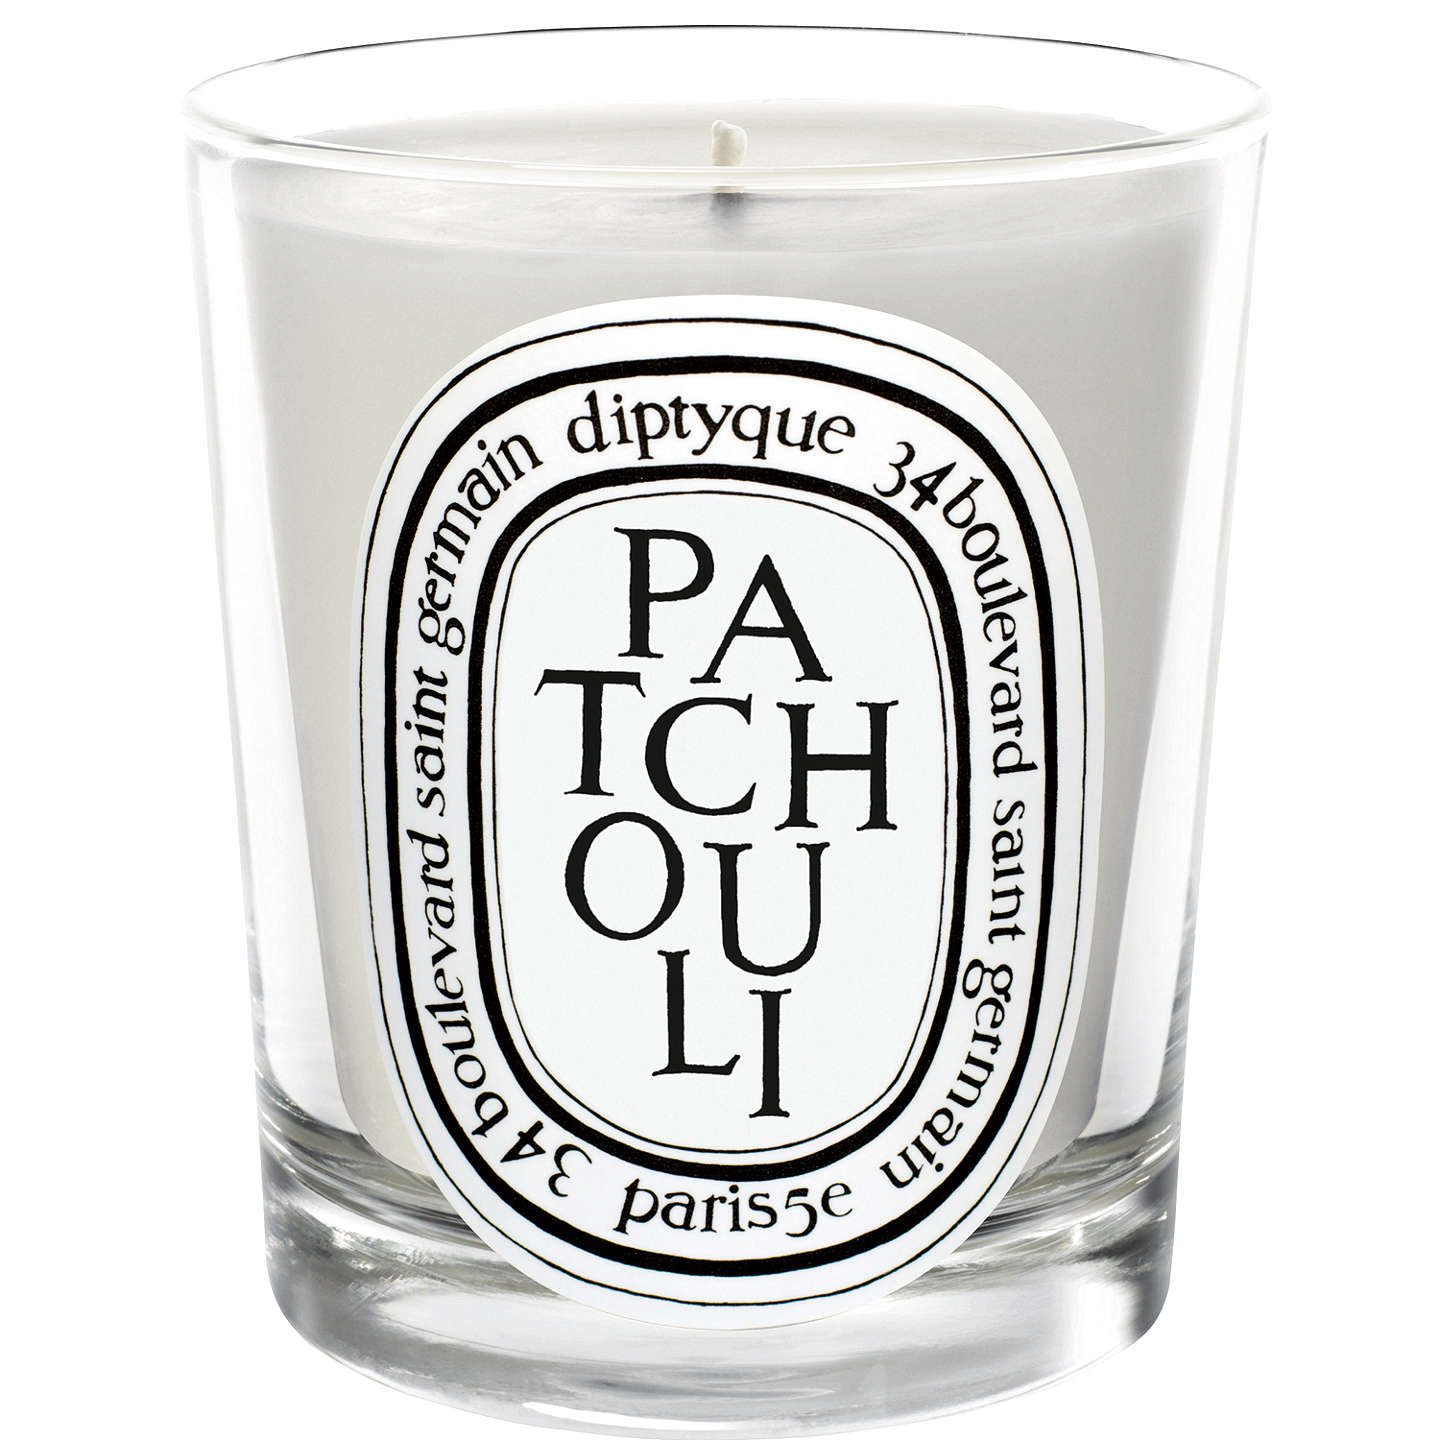 Image result for diptyque patchouli